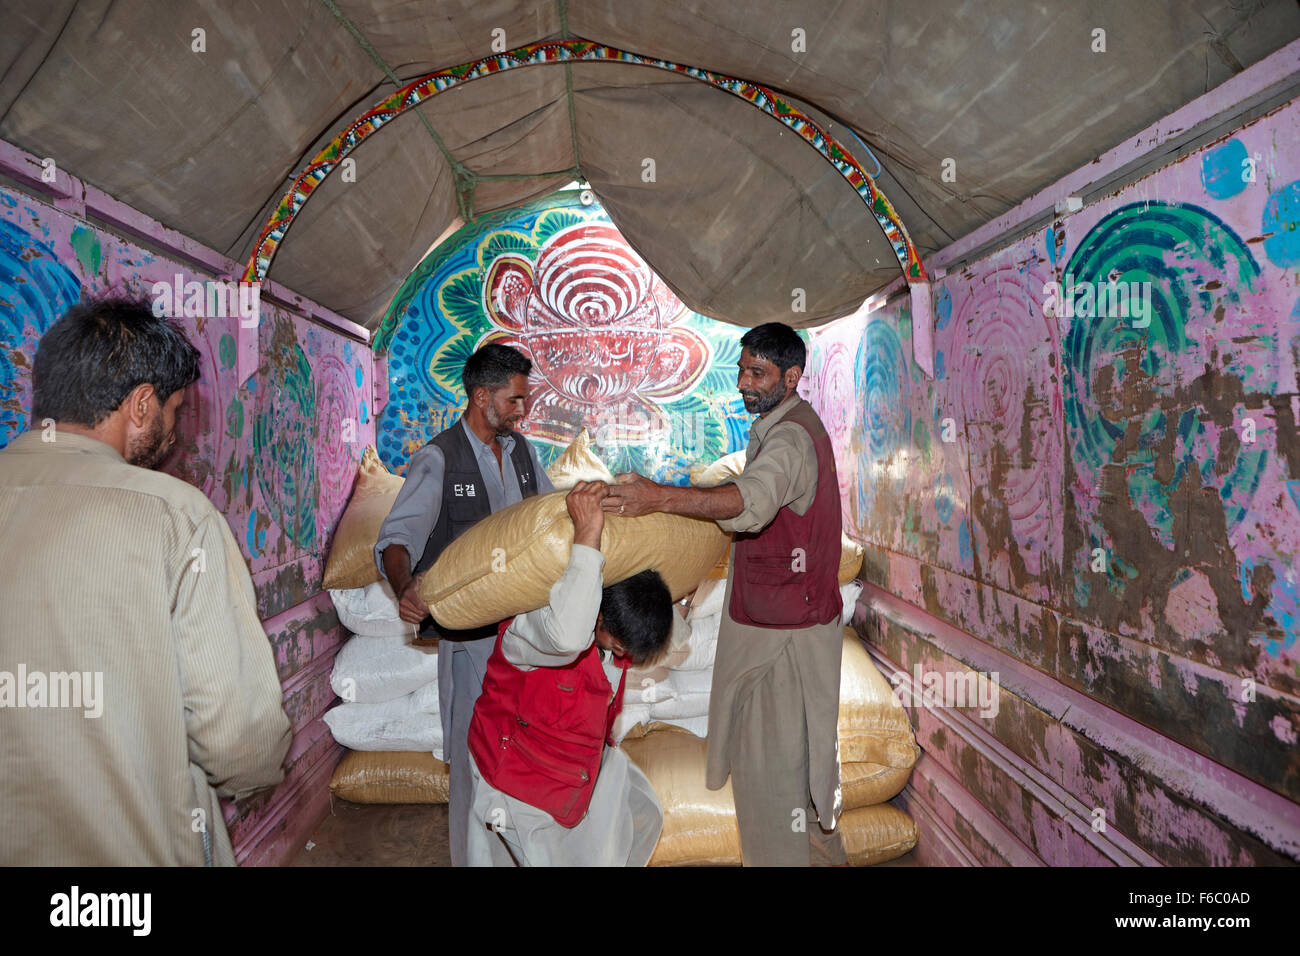 Porters unloading goods arrived in truck, uri, jammu & kashmir, india, asia - Stock Image